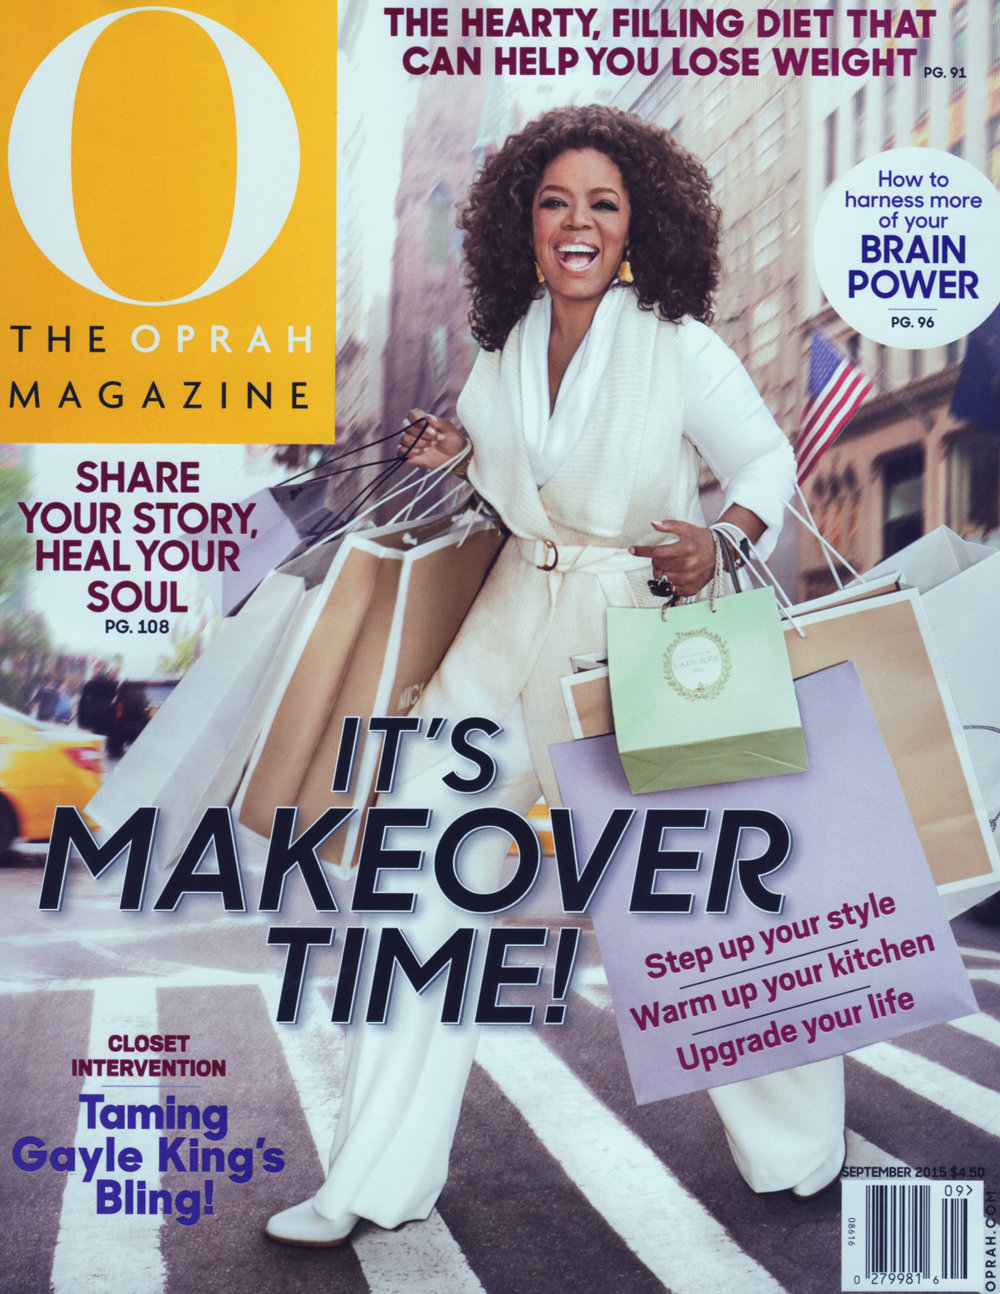 Copy of The Oprah Magazine